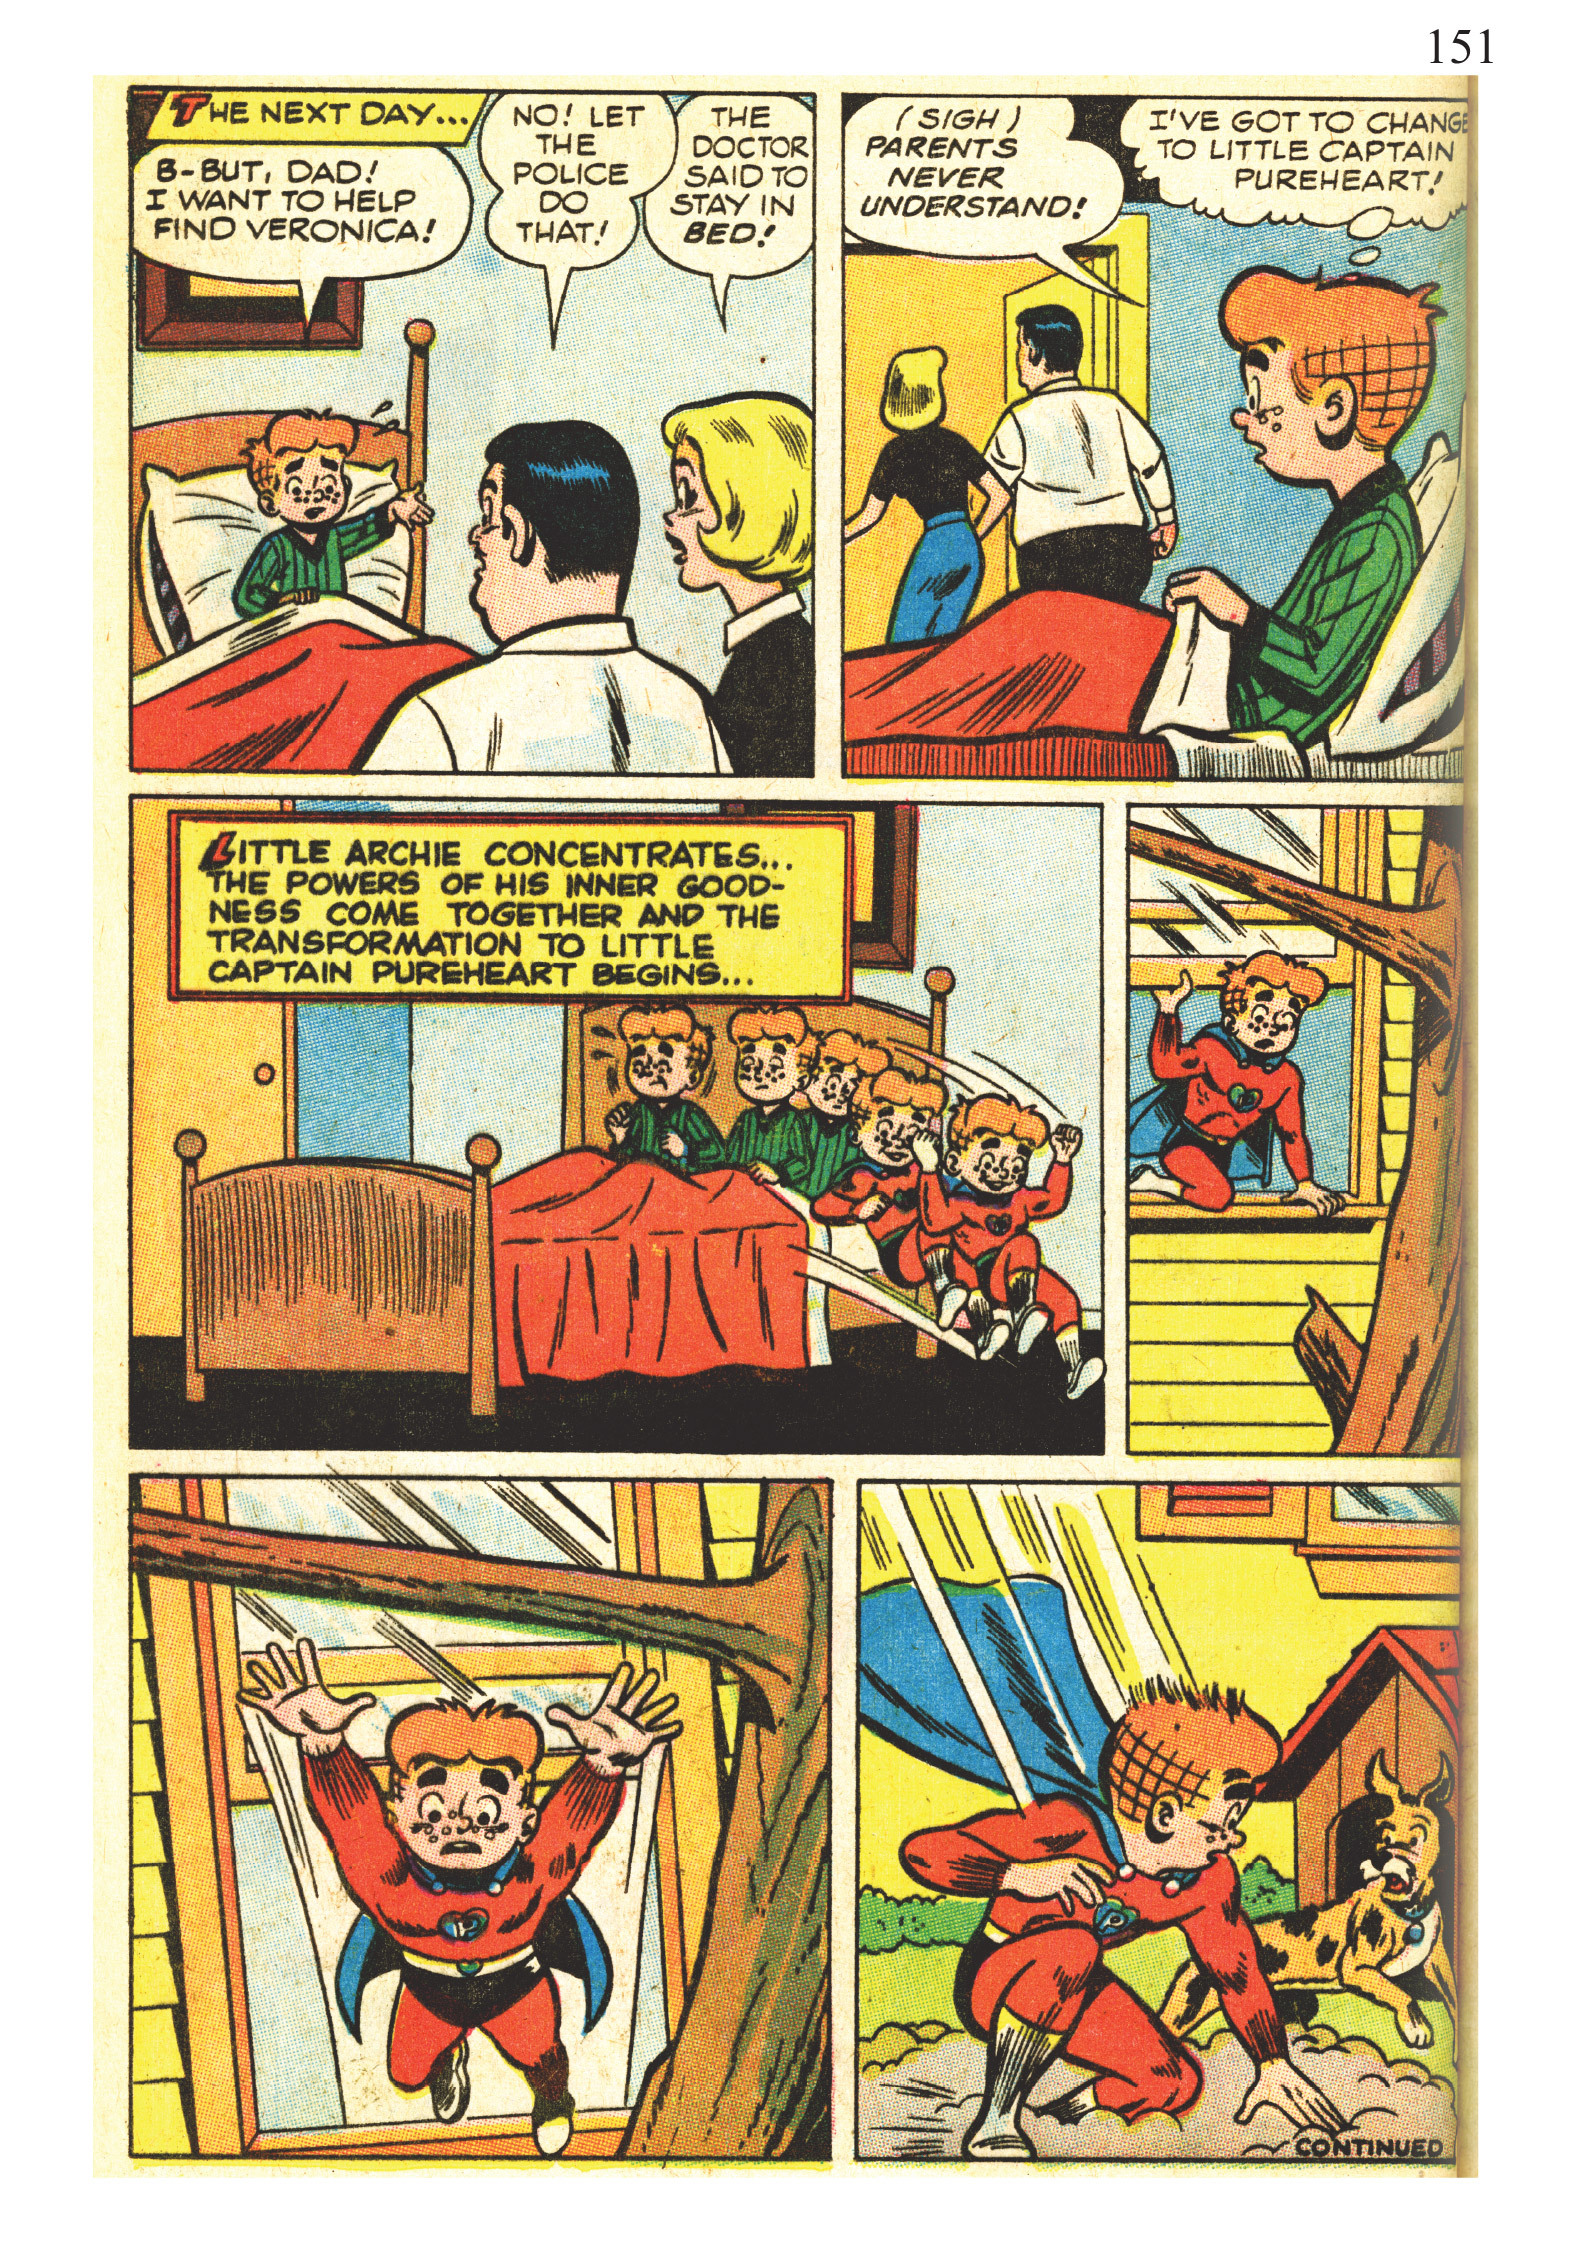 Read online The Best of Archie Comics comic -  Issue # TPB 2 (Part 1) - 153